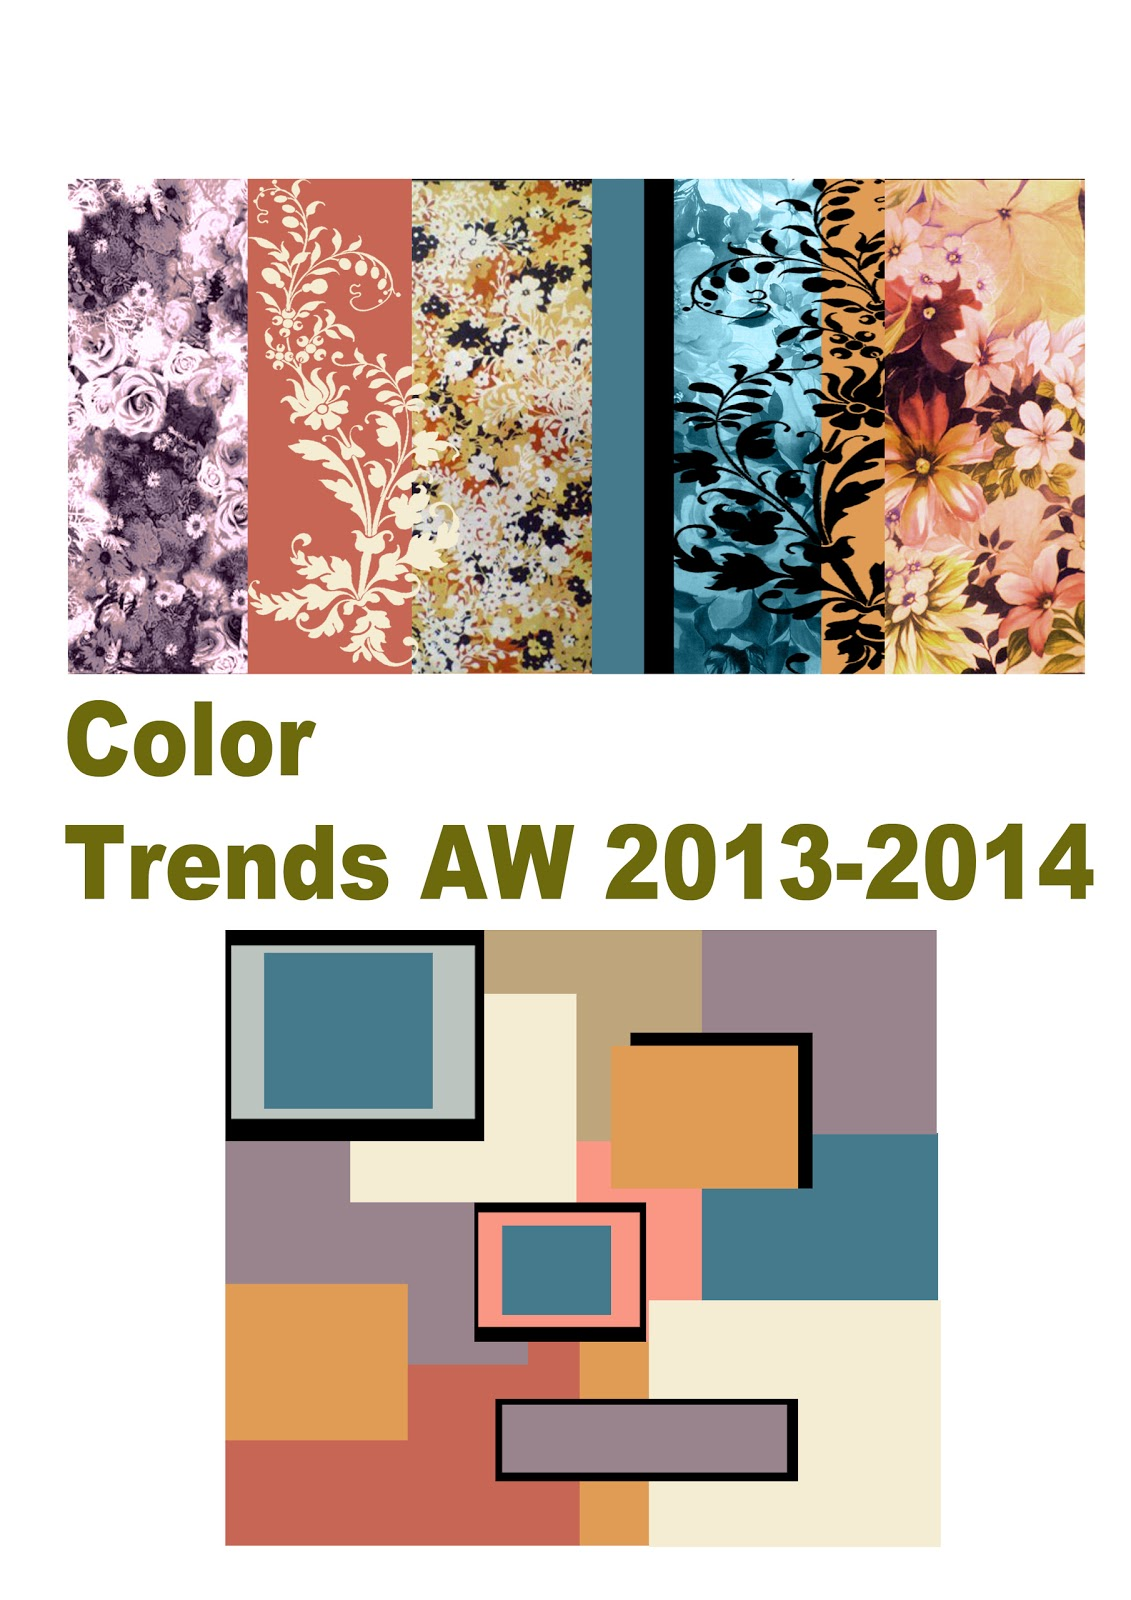 Color trends 2013 2014 and applied to design examples for Raumgestaltung trends 2014